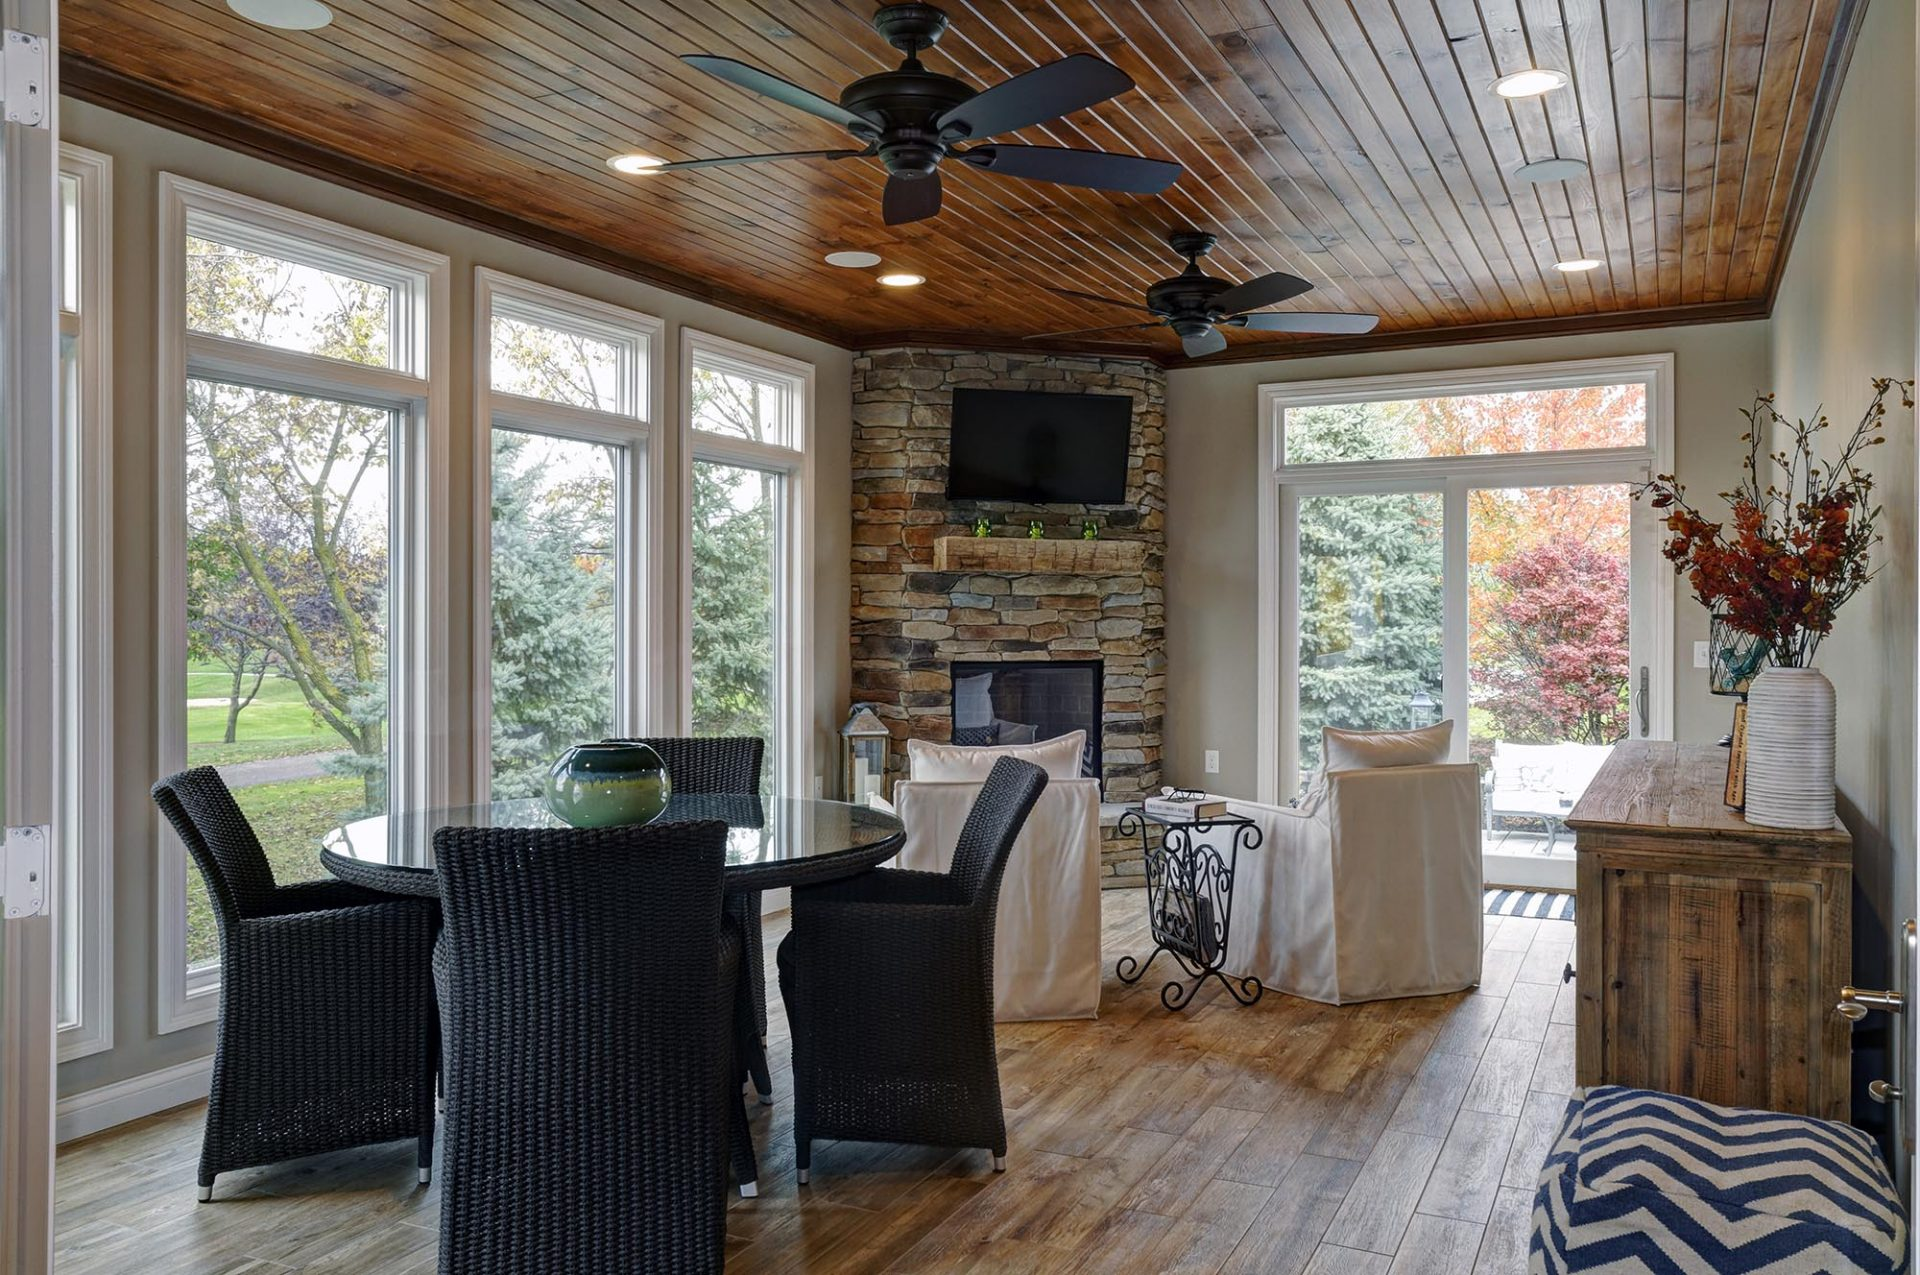 Room Addition, Sun room, New Albany, Dave Fox, Remodel, stone fireplace, wood floors, wood mantel